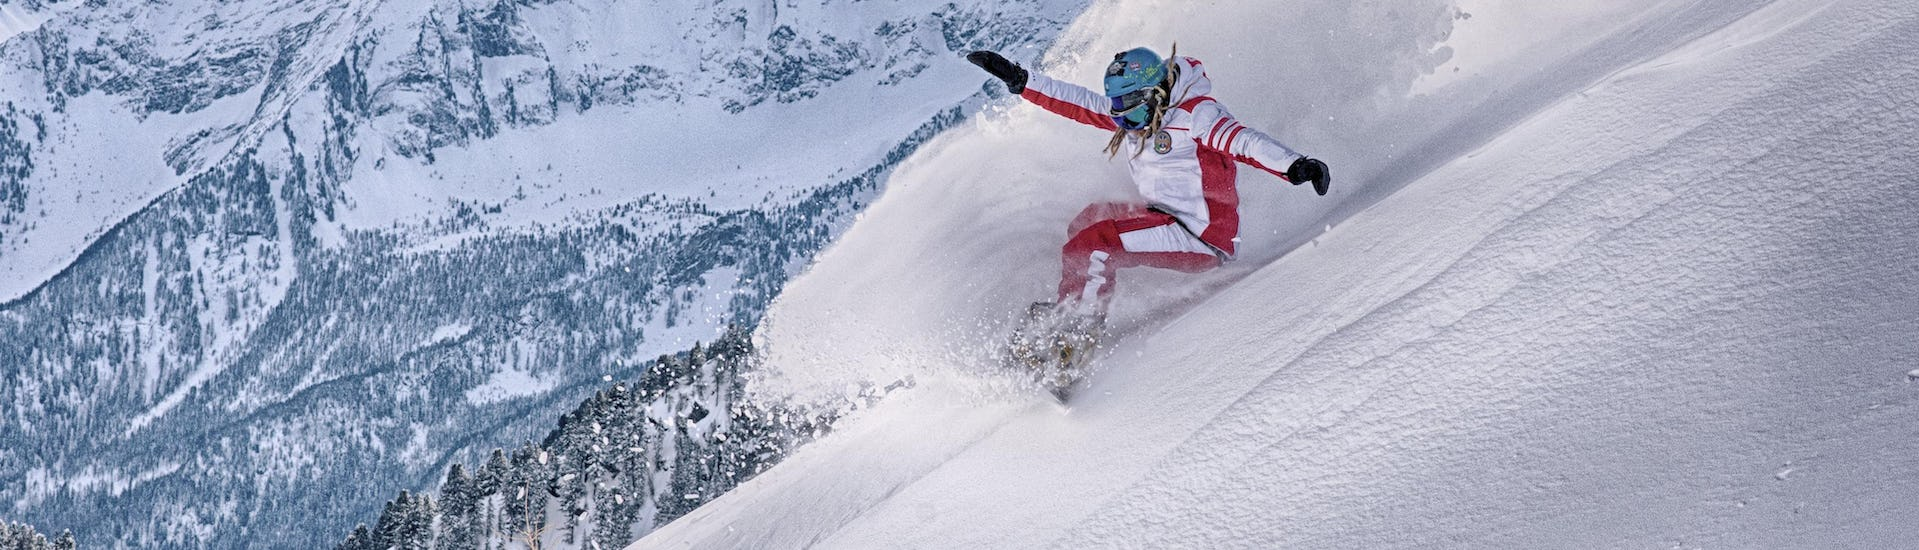 Private Off-Piste Snowboarding Lessons - All Levels